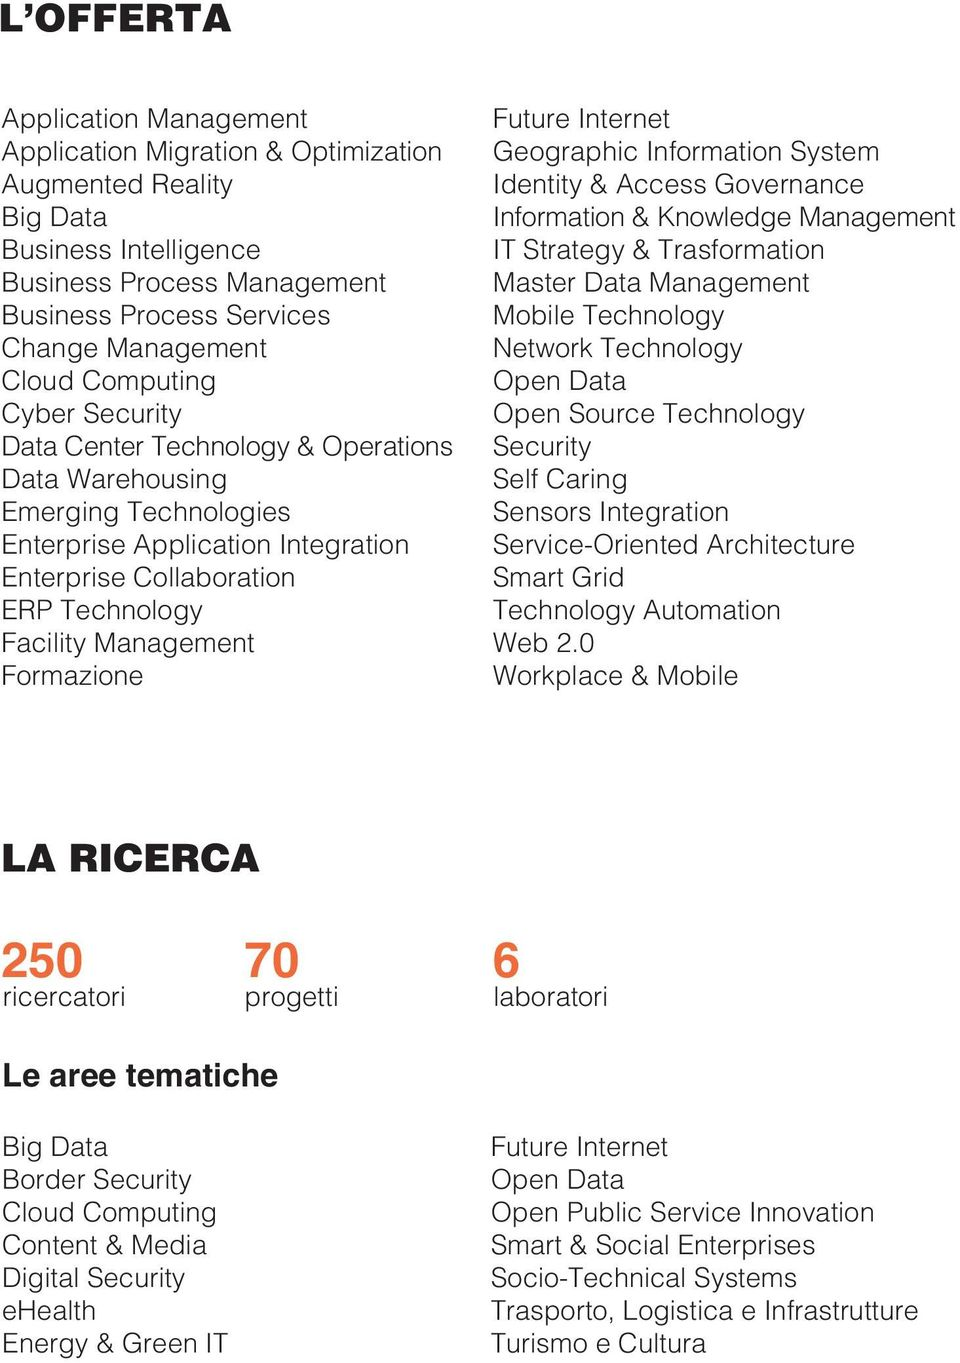 Formazione Future Internet Geographic Information System Identity & Access Governance Information & Knowledge Management IT Strategy & Trasformation Master Data Management Mobile Technology Network